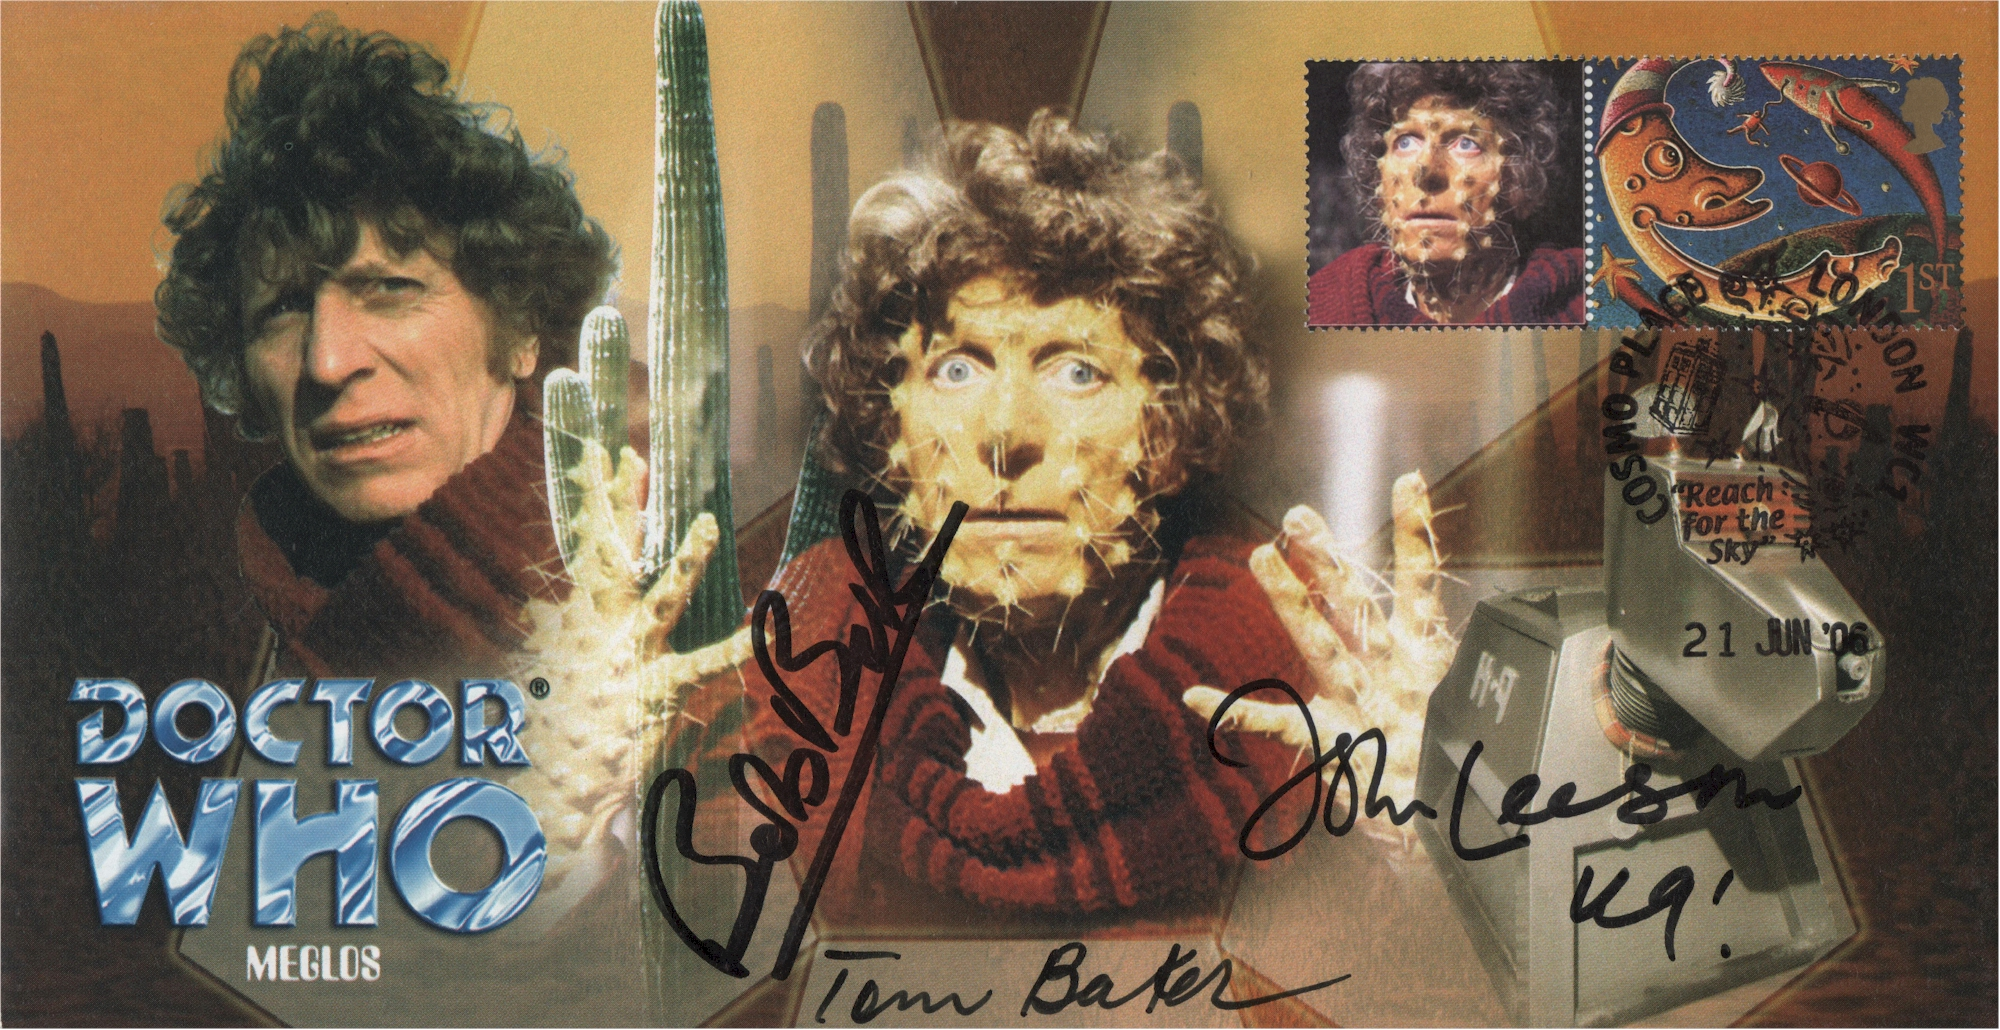 Doctor Who Battlefield Episode Collectable Stamp Cover Signed ANGELA BRUCE